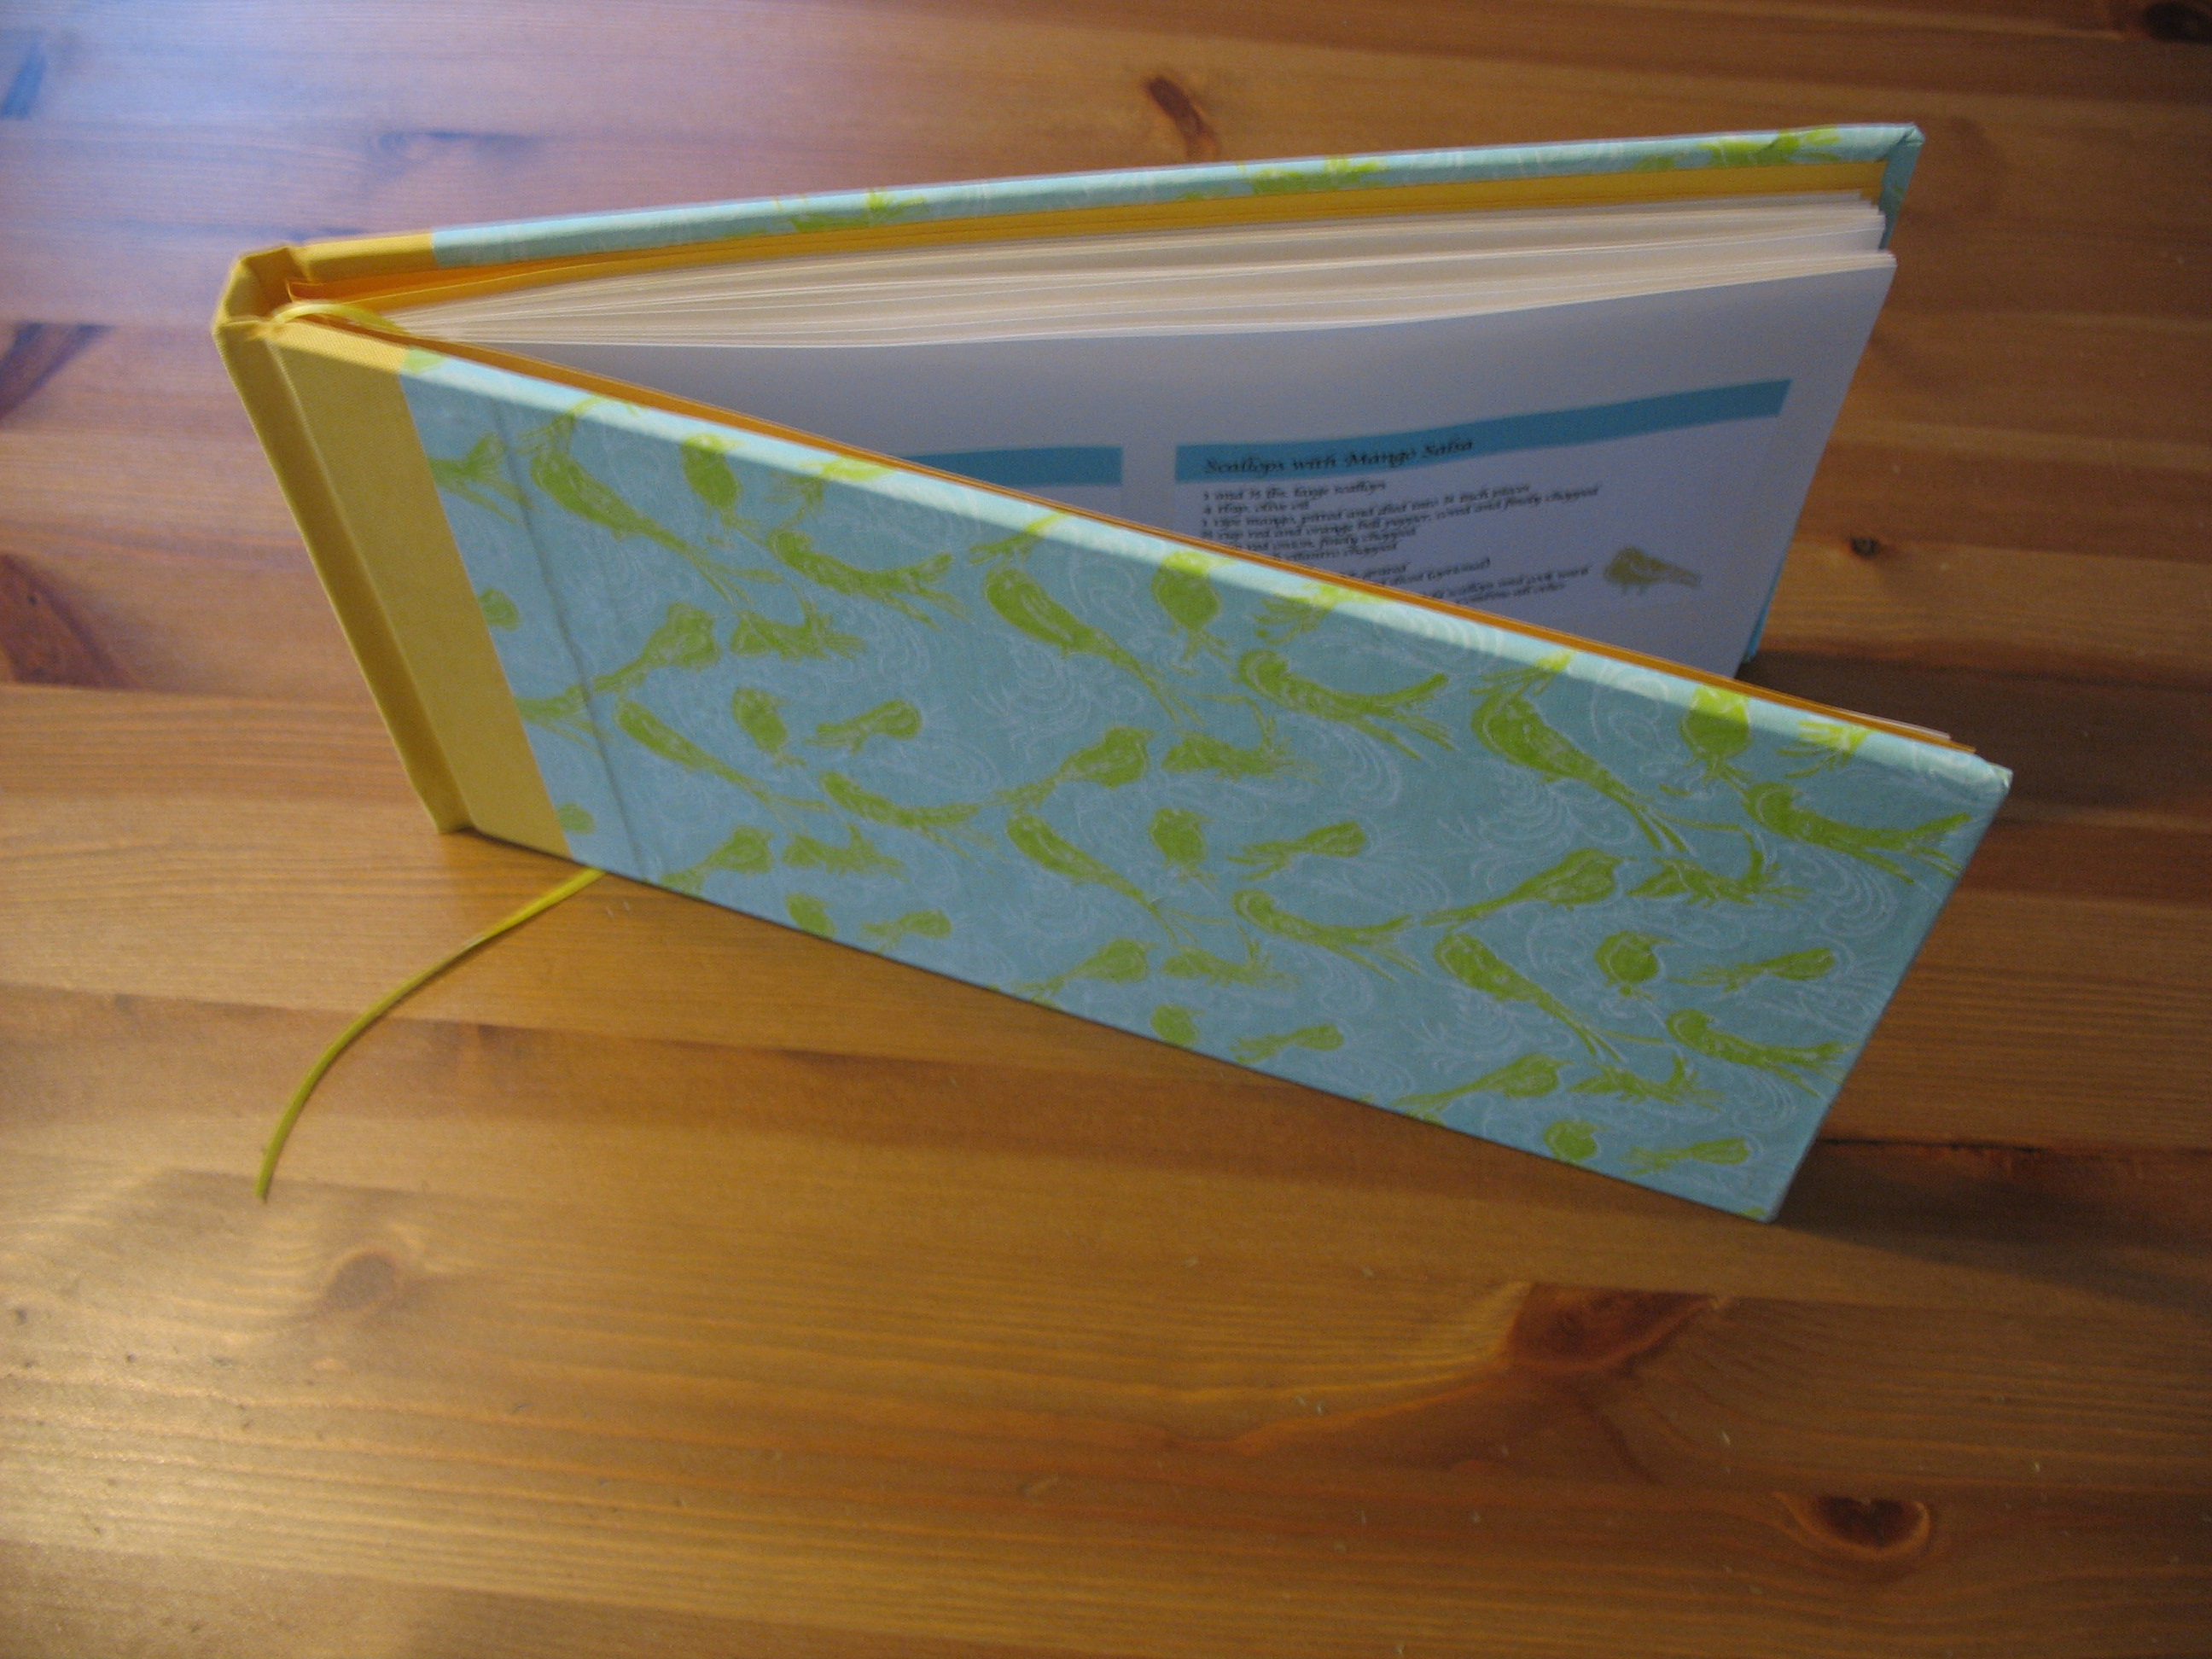 birdie bridal shower recipe book